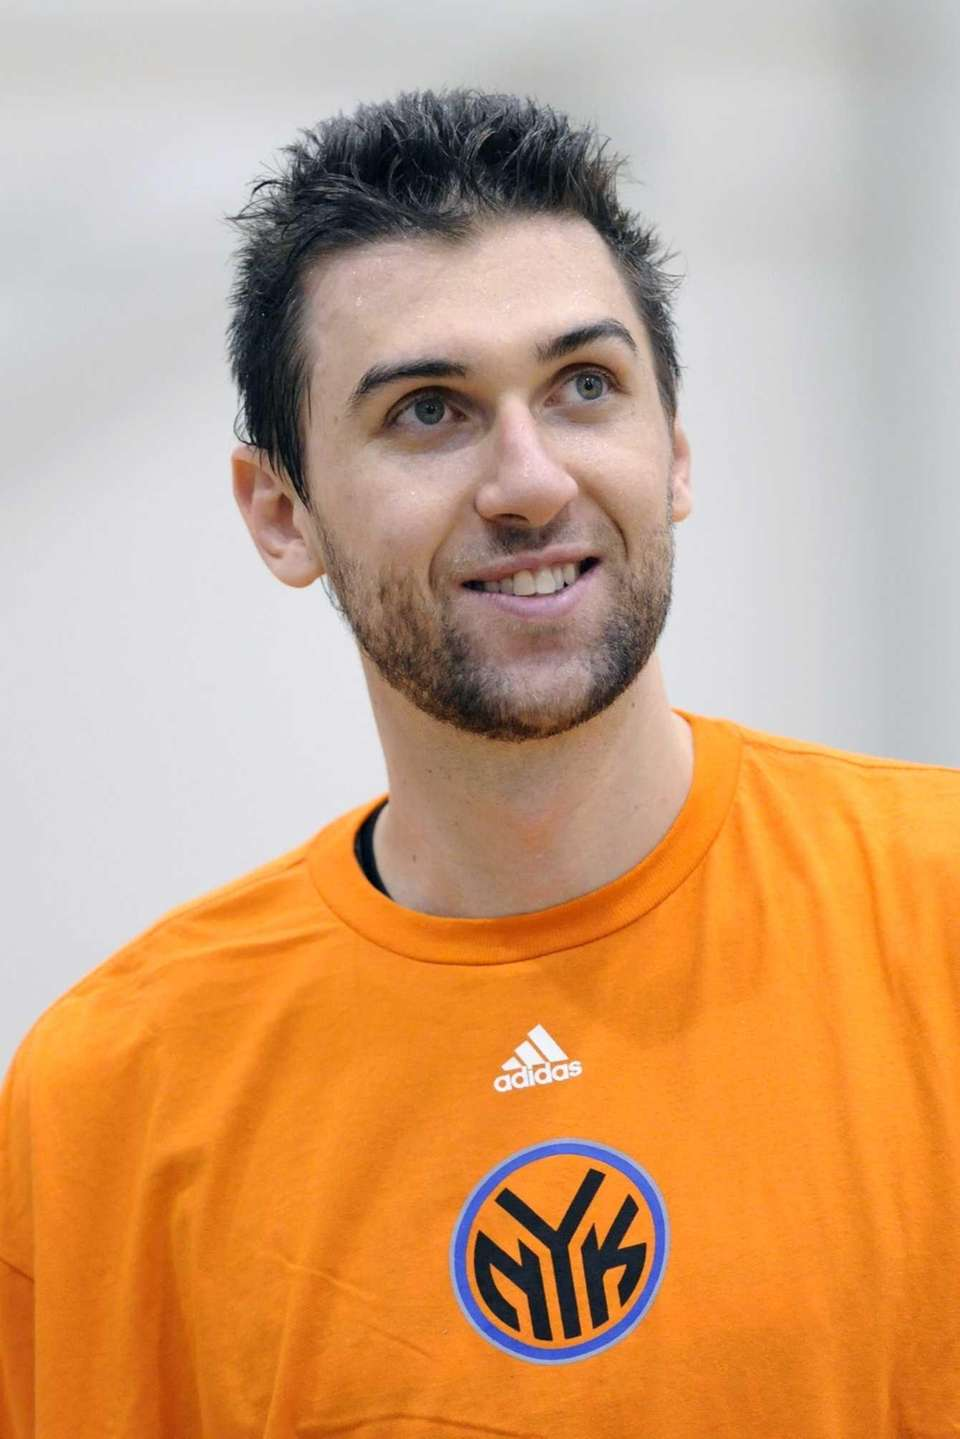 Andrea Bargnani looks on after practice during training